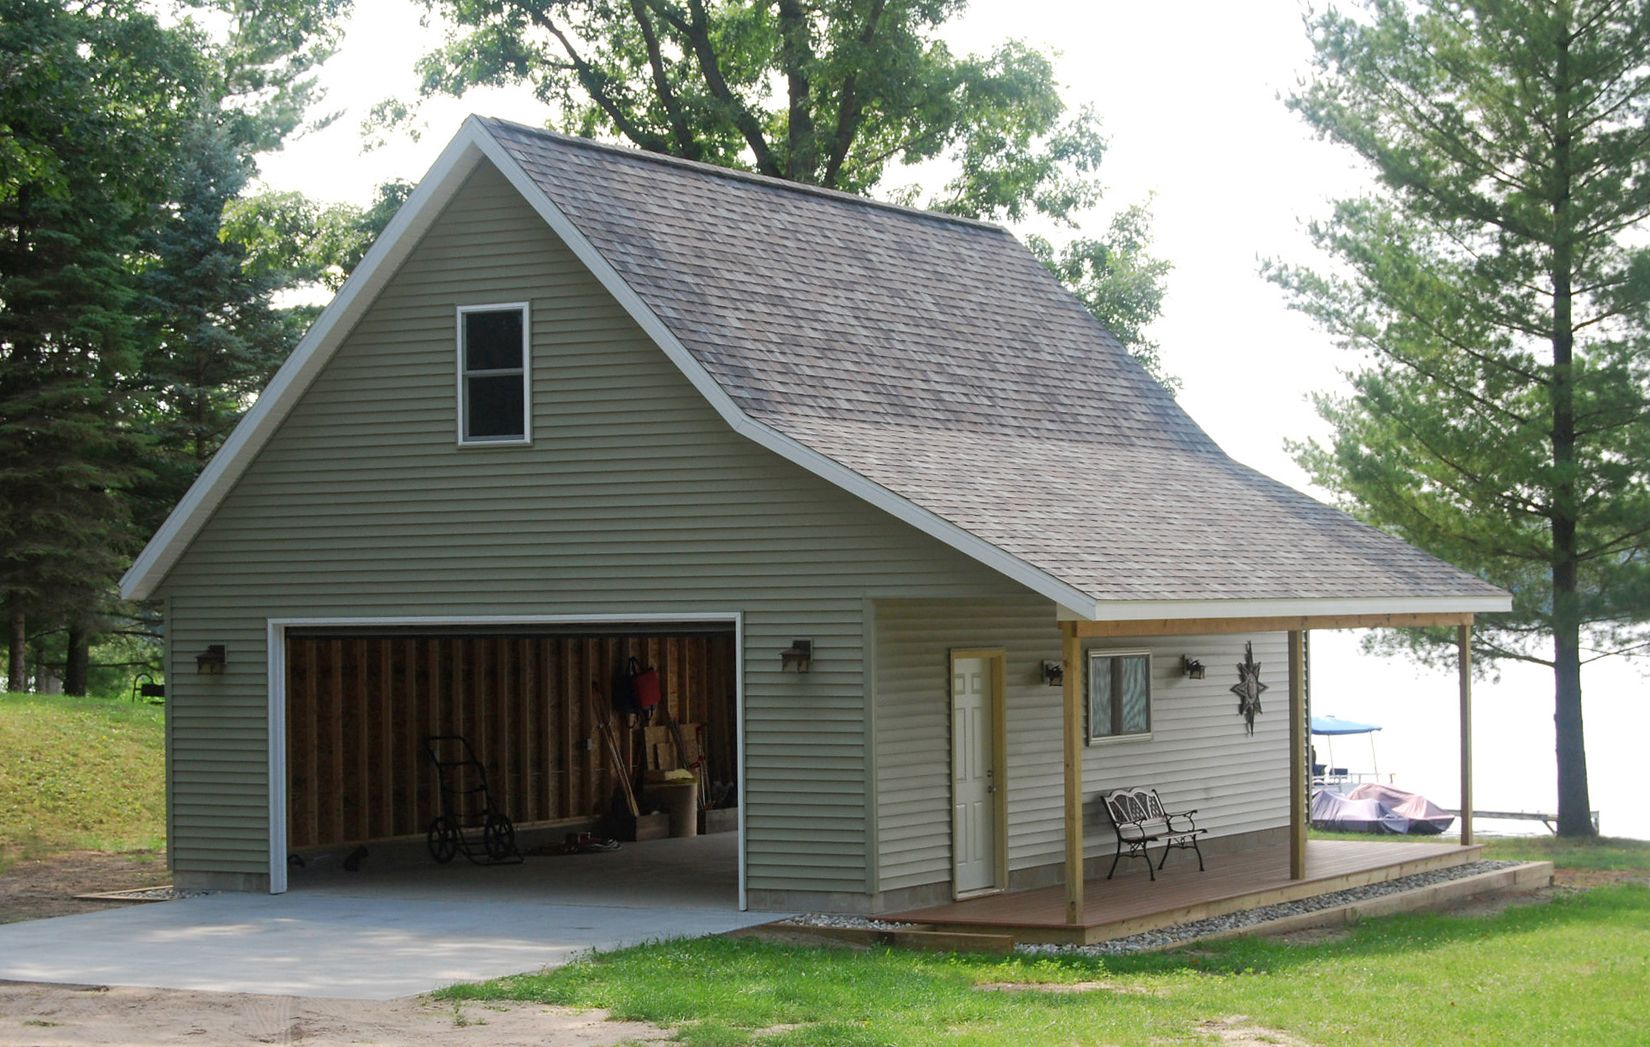 Pole barn garage plans welcome to jb custom homes where for Small barn designs